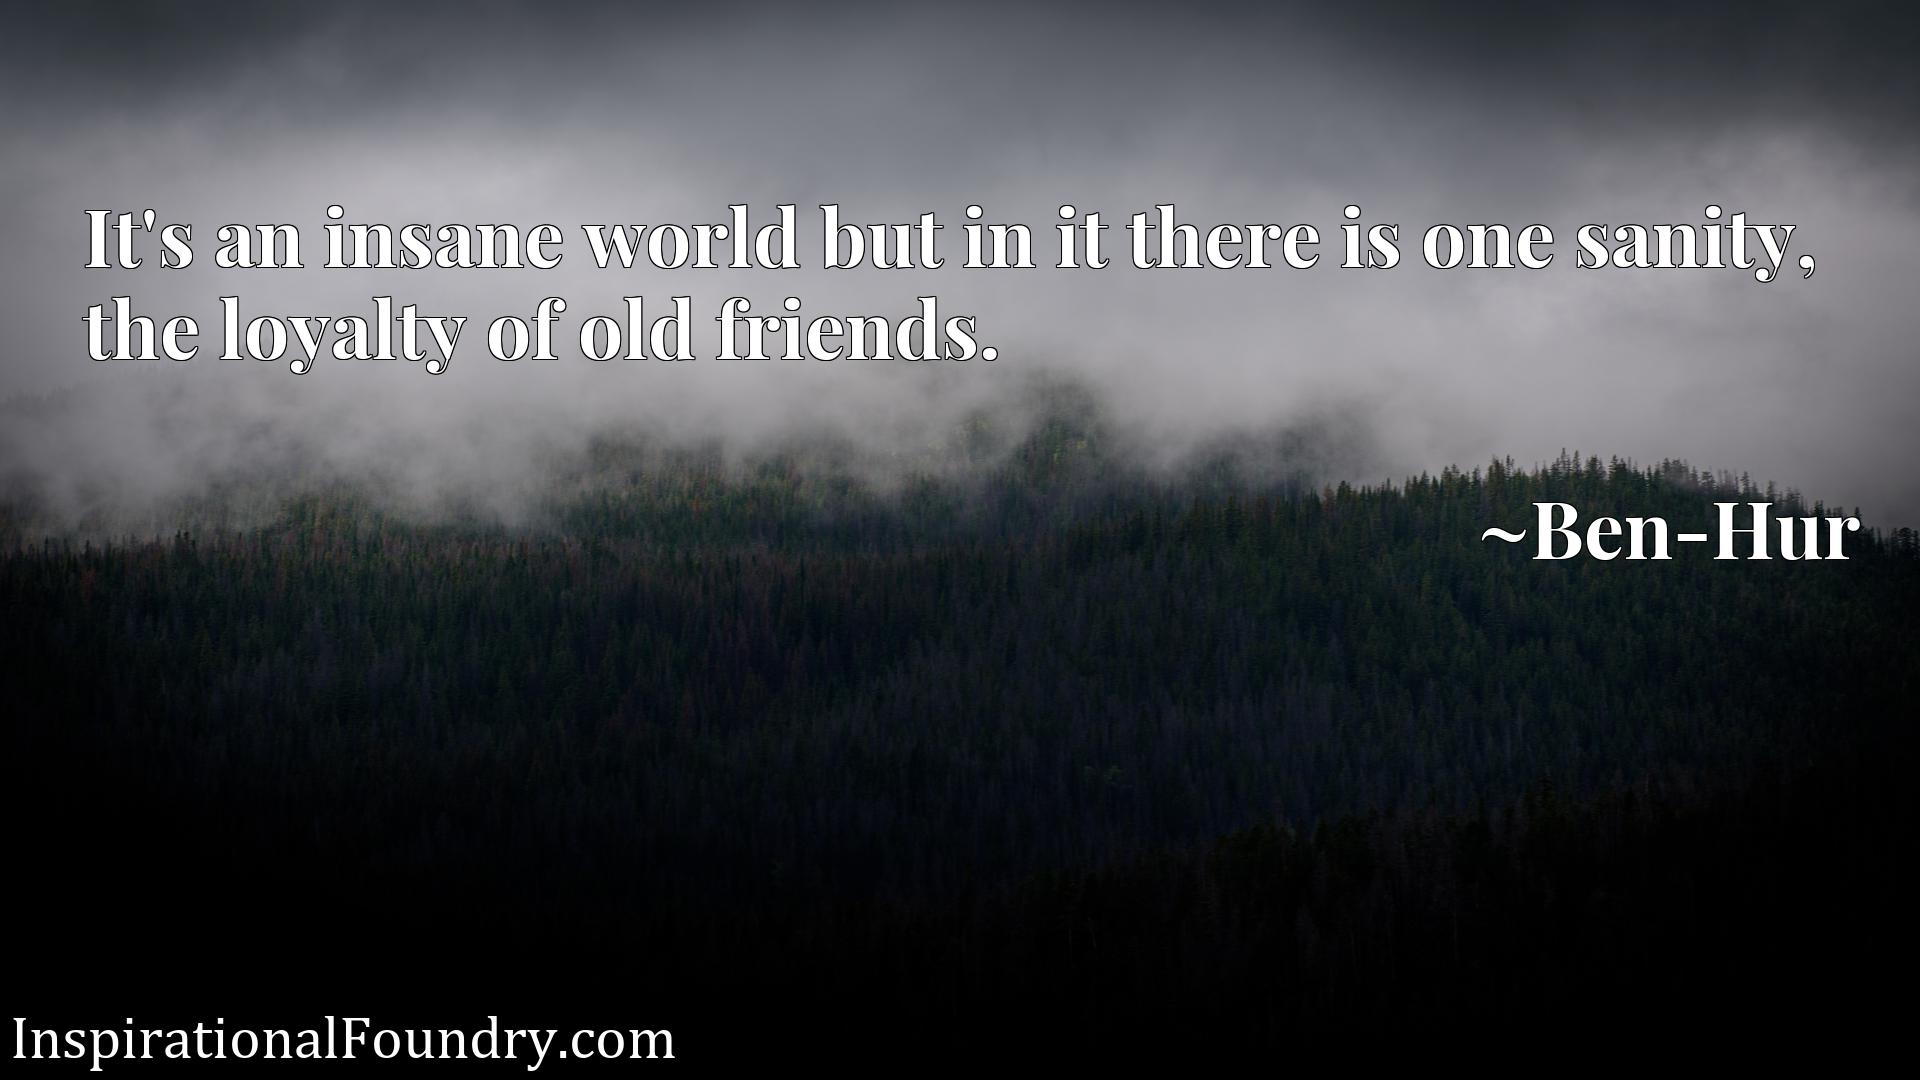 It's an insane world but in it there is one sanity, the loyalty of old friends.